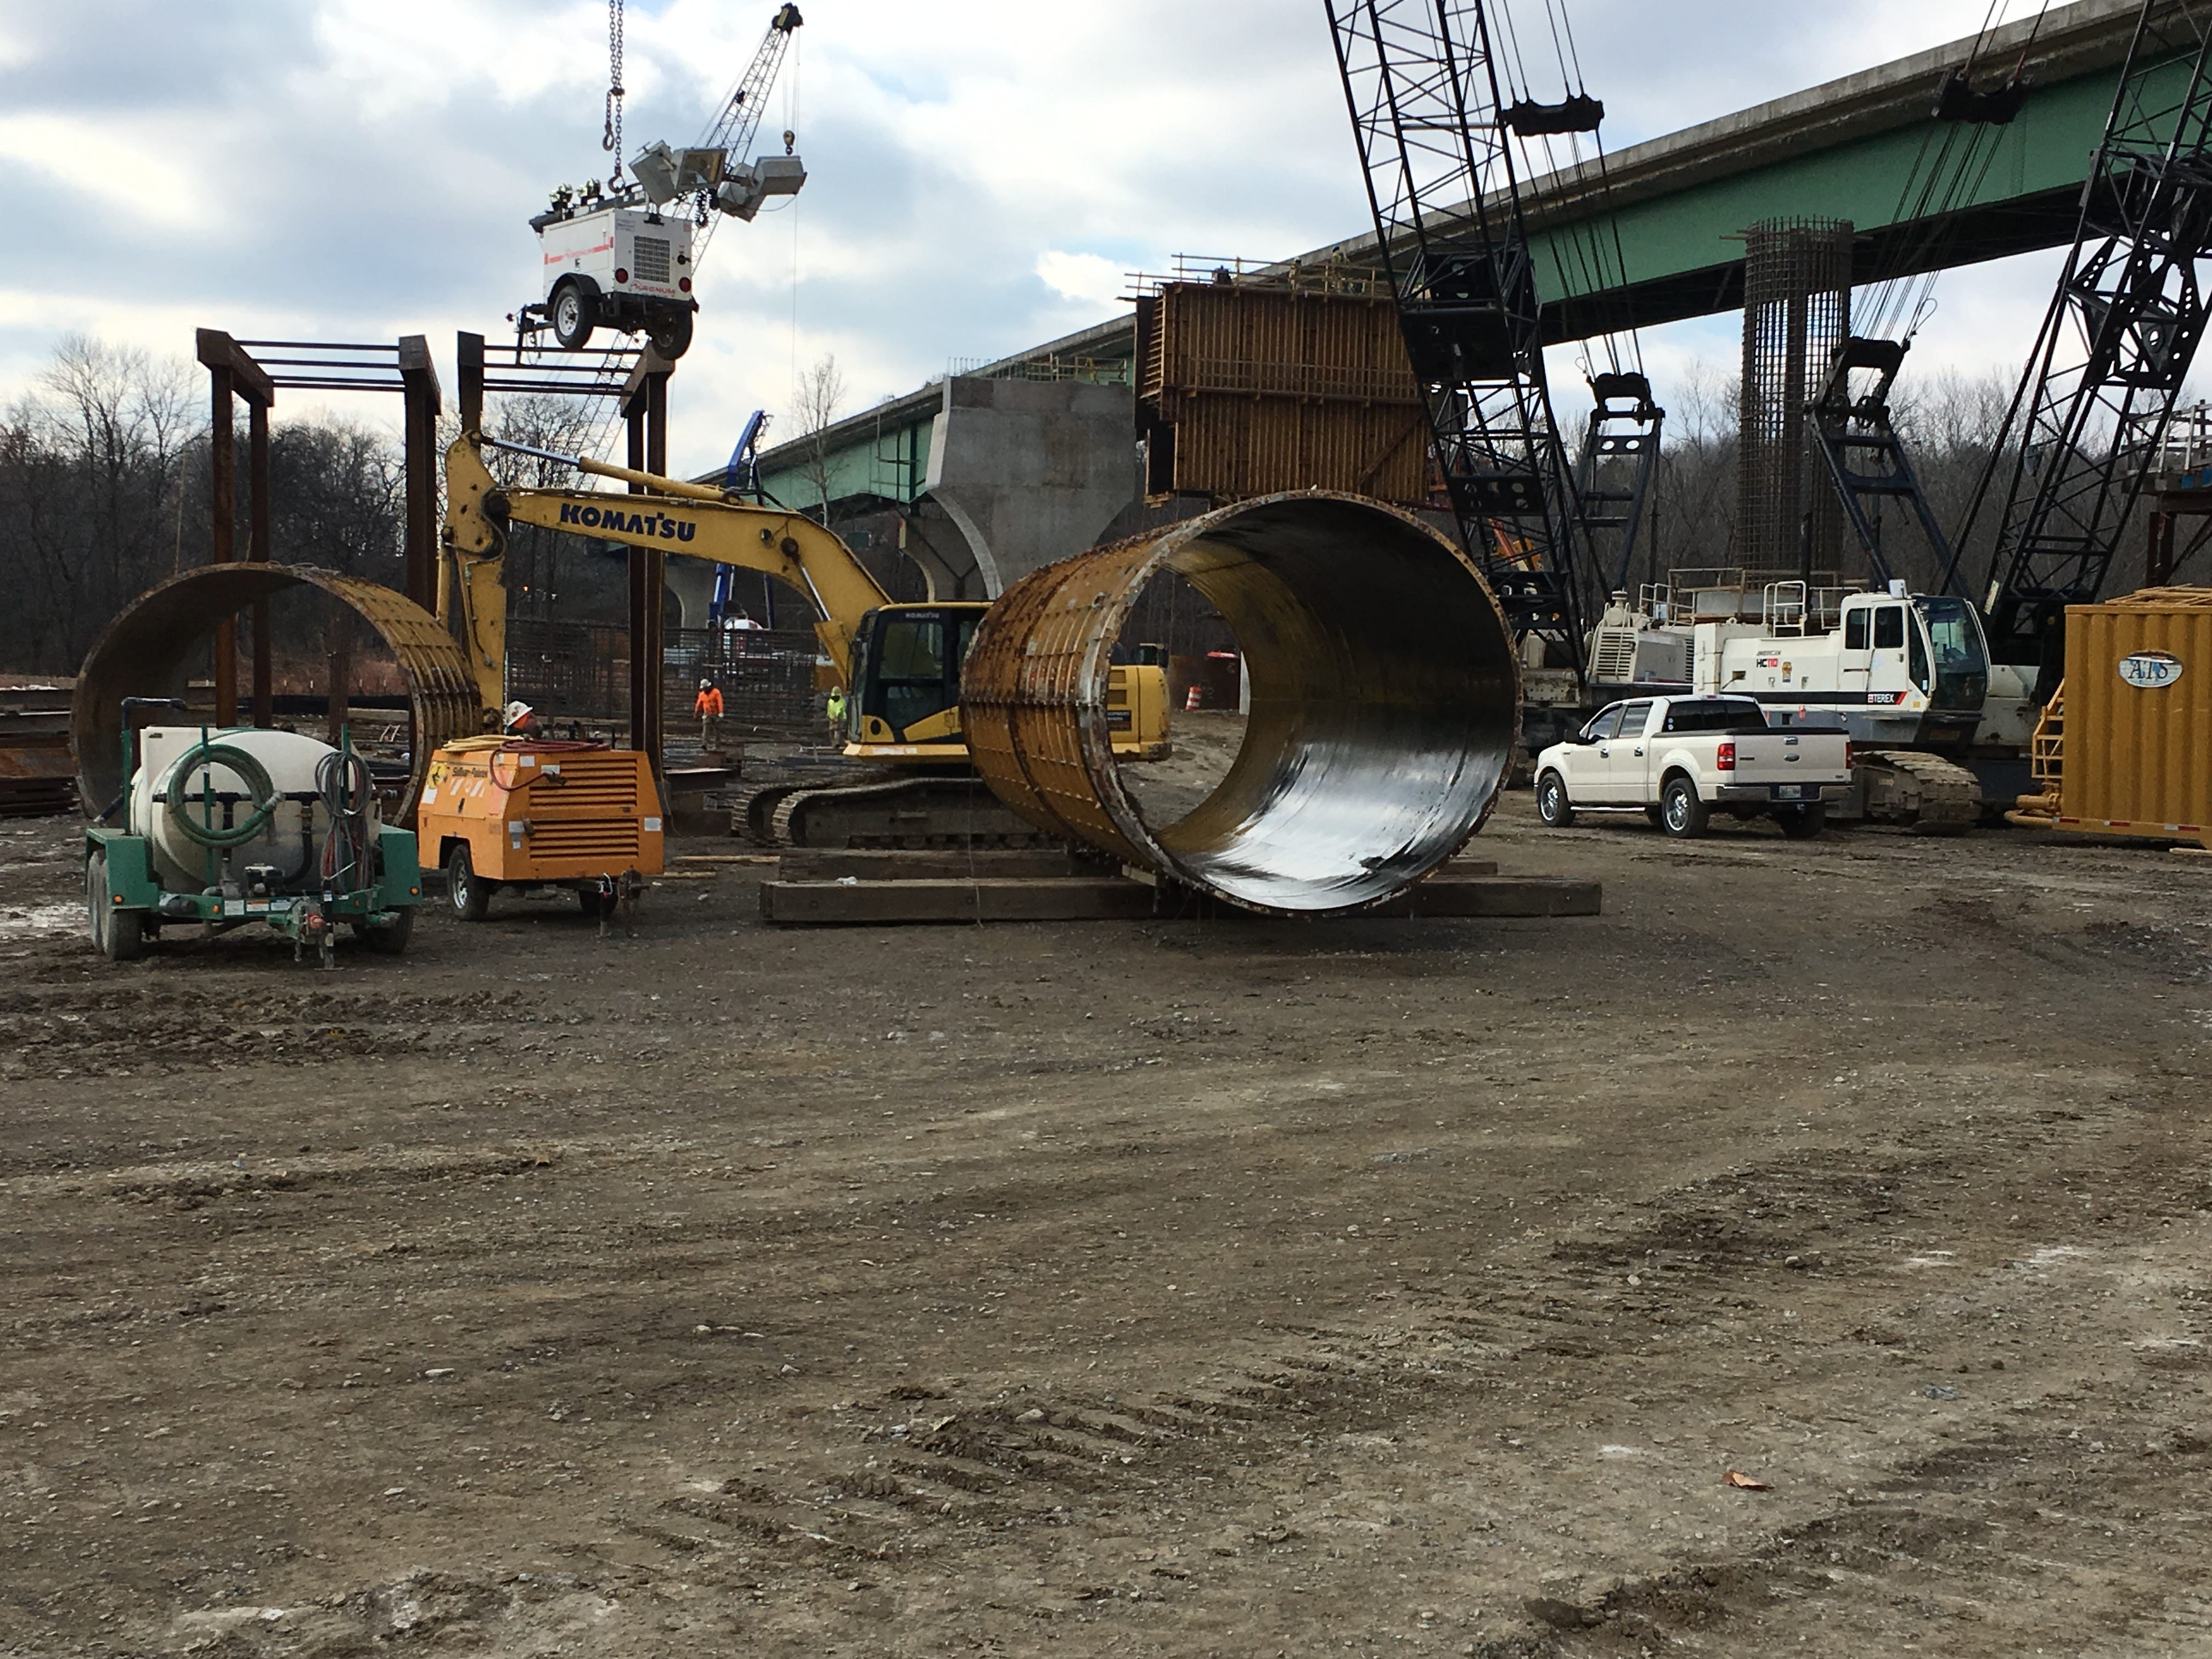 Large, round metal concrete forms await placement to construct support piers.